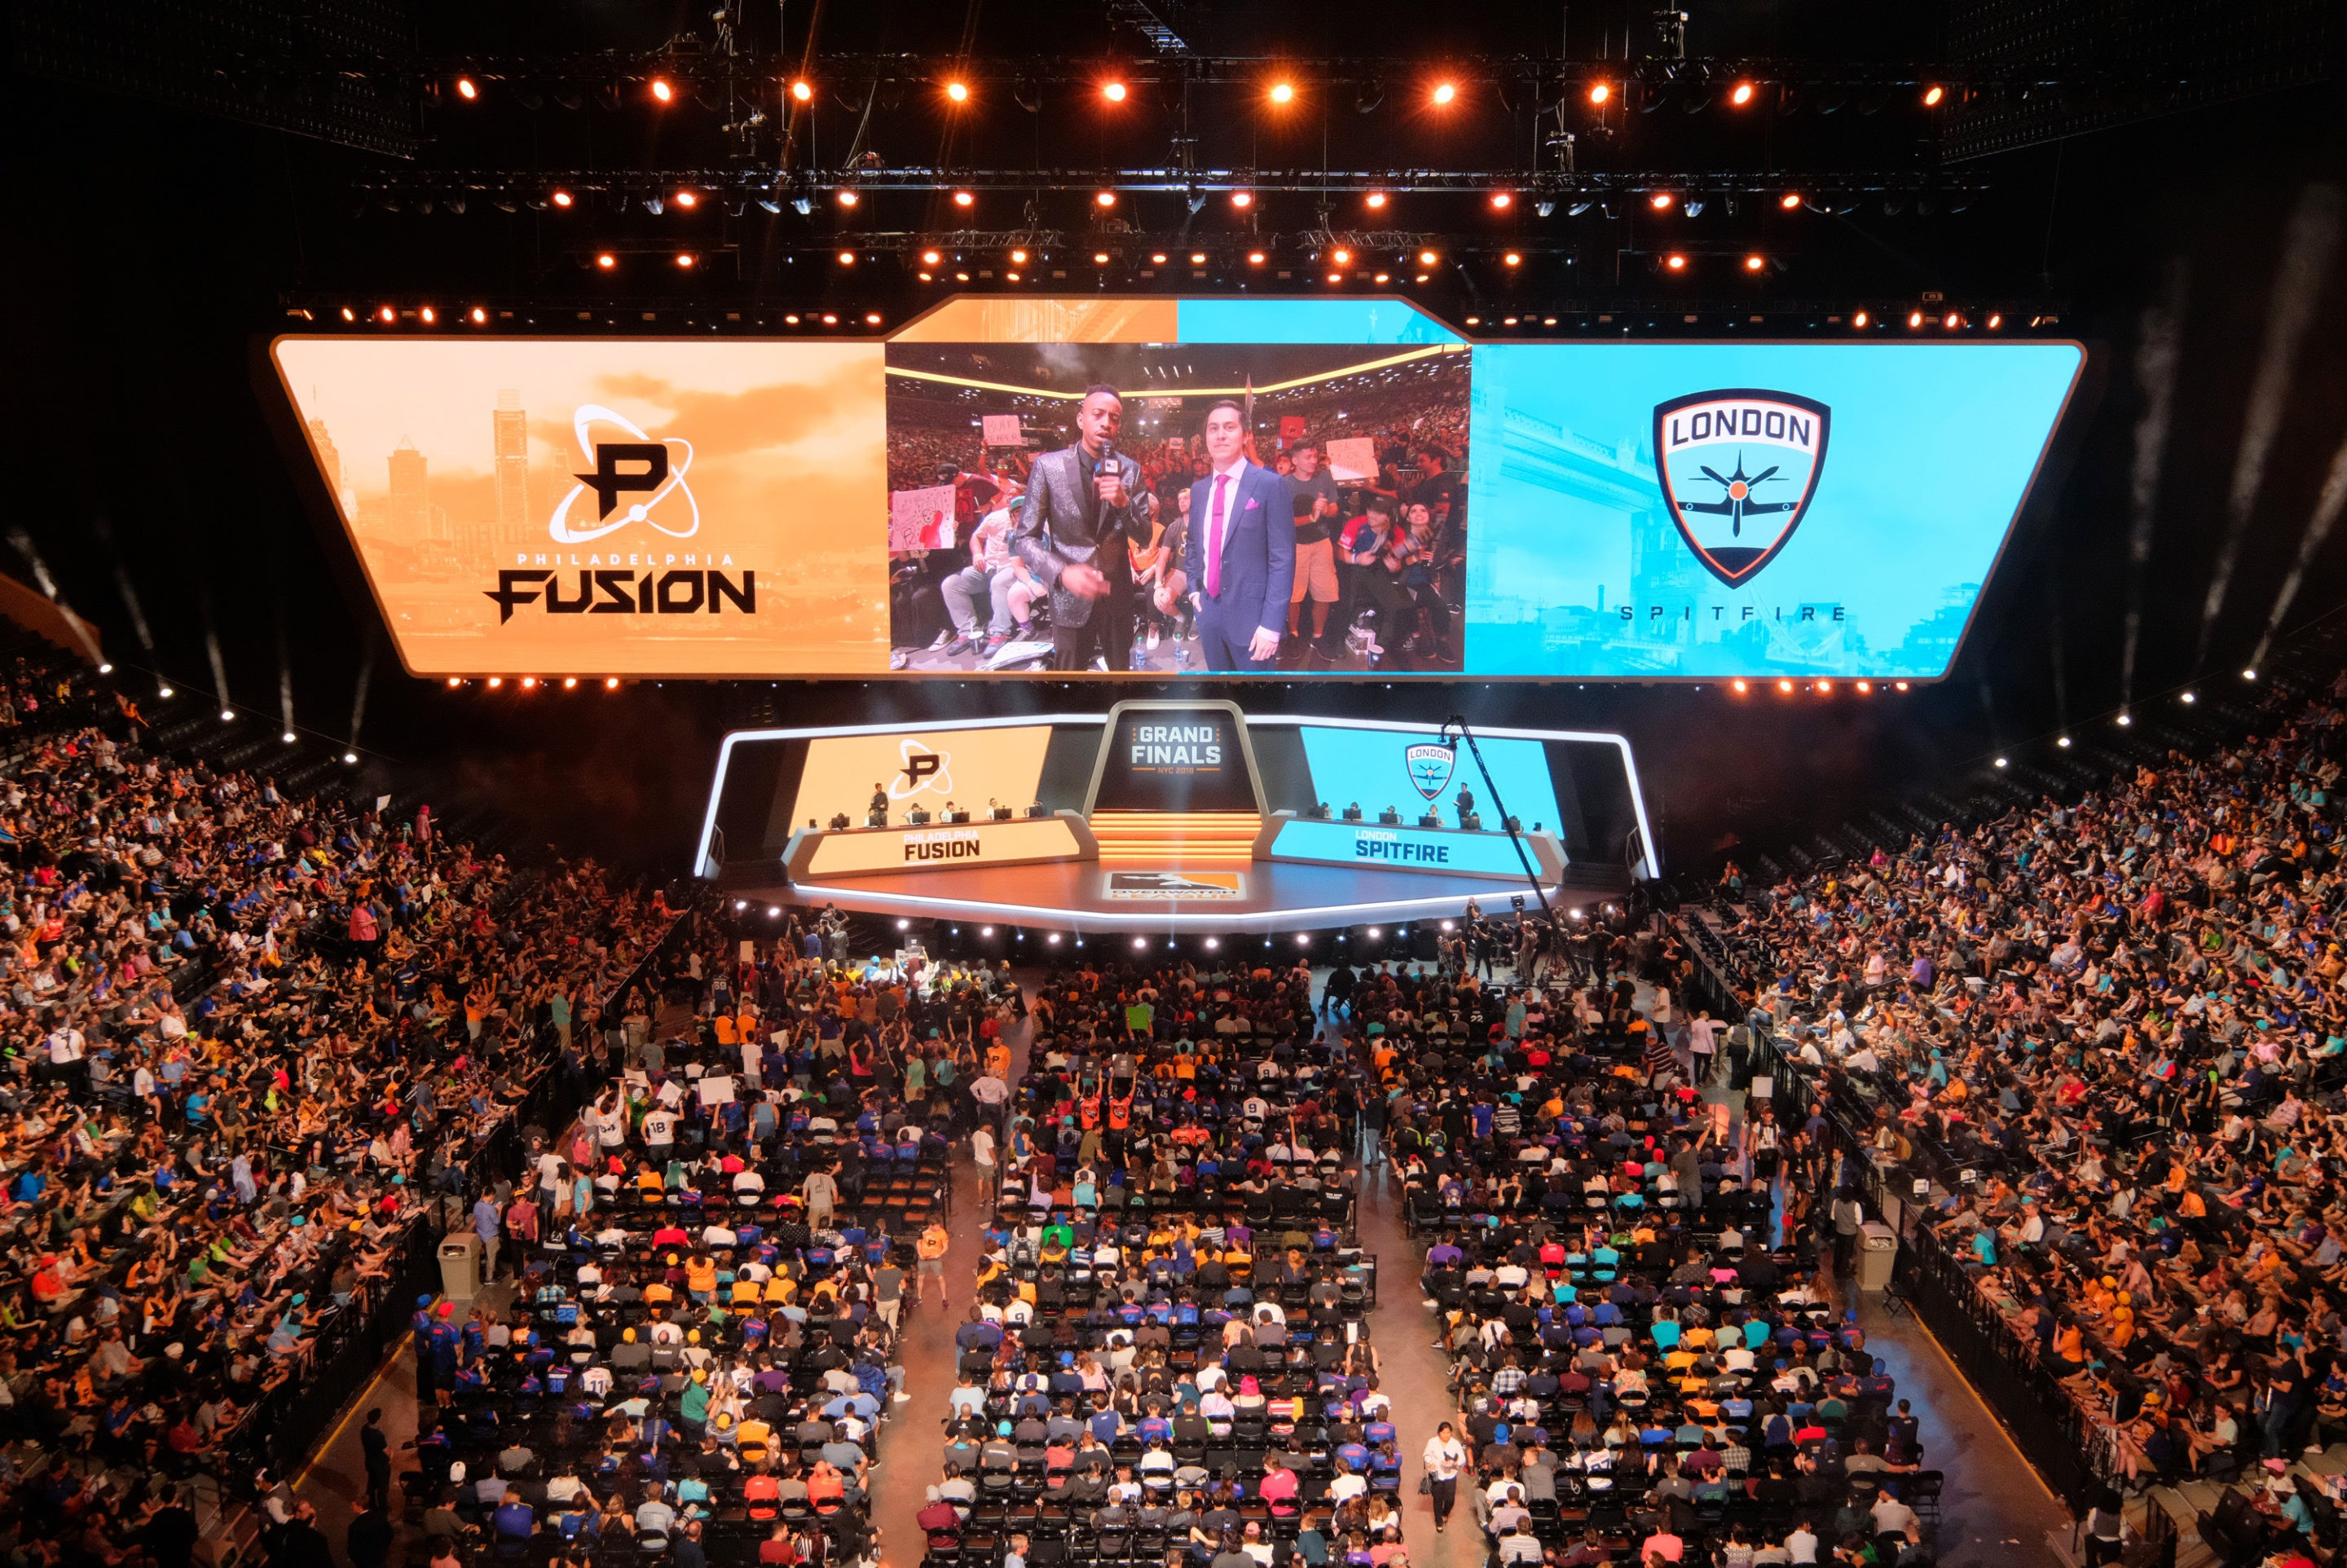 The Overwatch League Grand Finals stage. London Spitfire vs Philadelphia Fusion